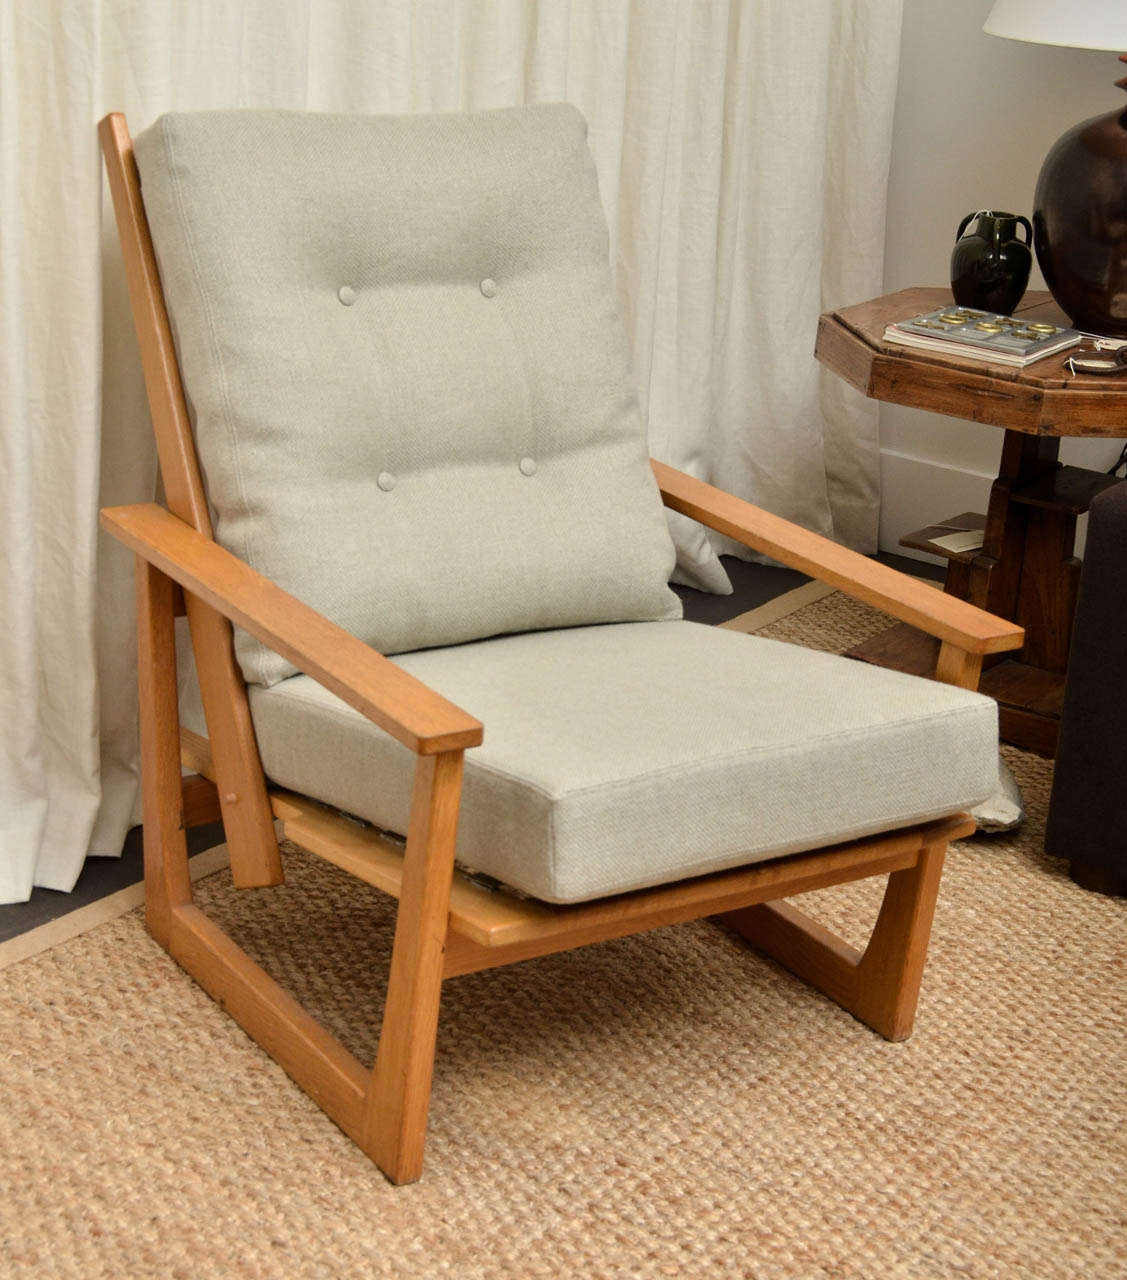 Nice Reclining Wooden Lounge Chair With Spindle Back, Newly Upholstered In  Natural + Pale Blue Woven